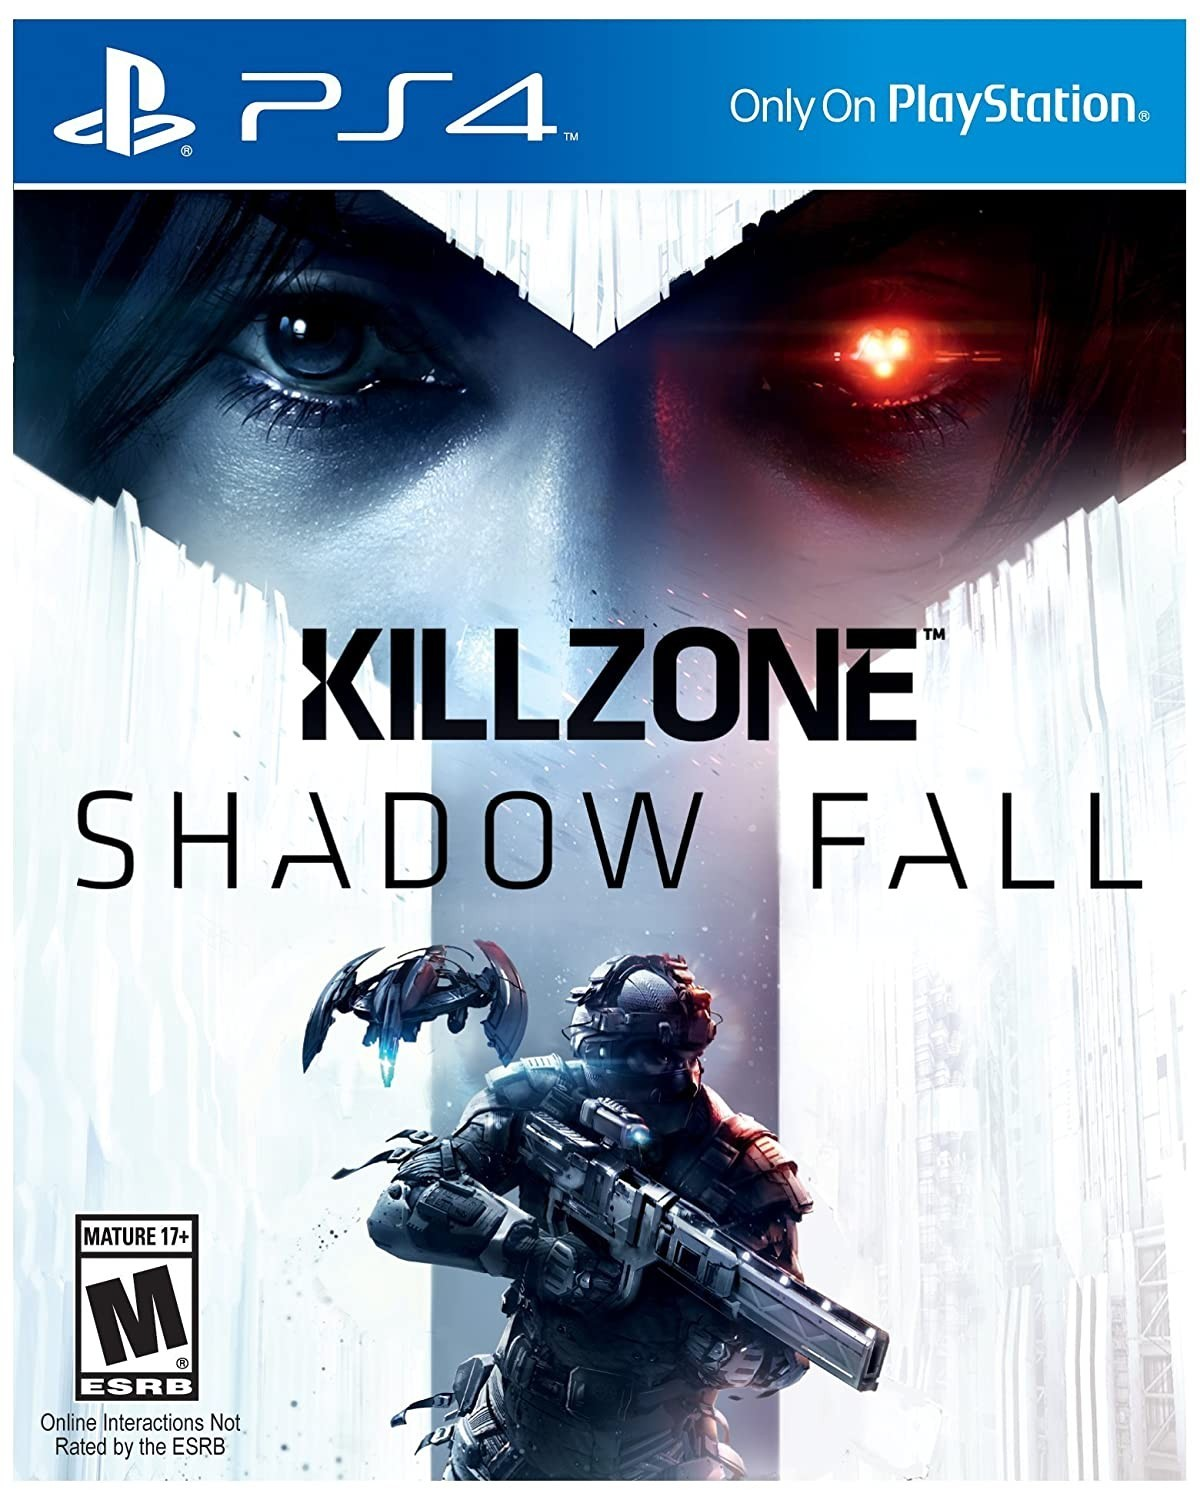 Killzone: У полоні сутінку | Killzone: Shadow Fall (англ) б/в PS4